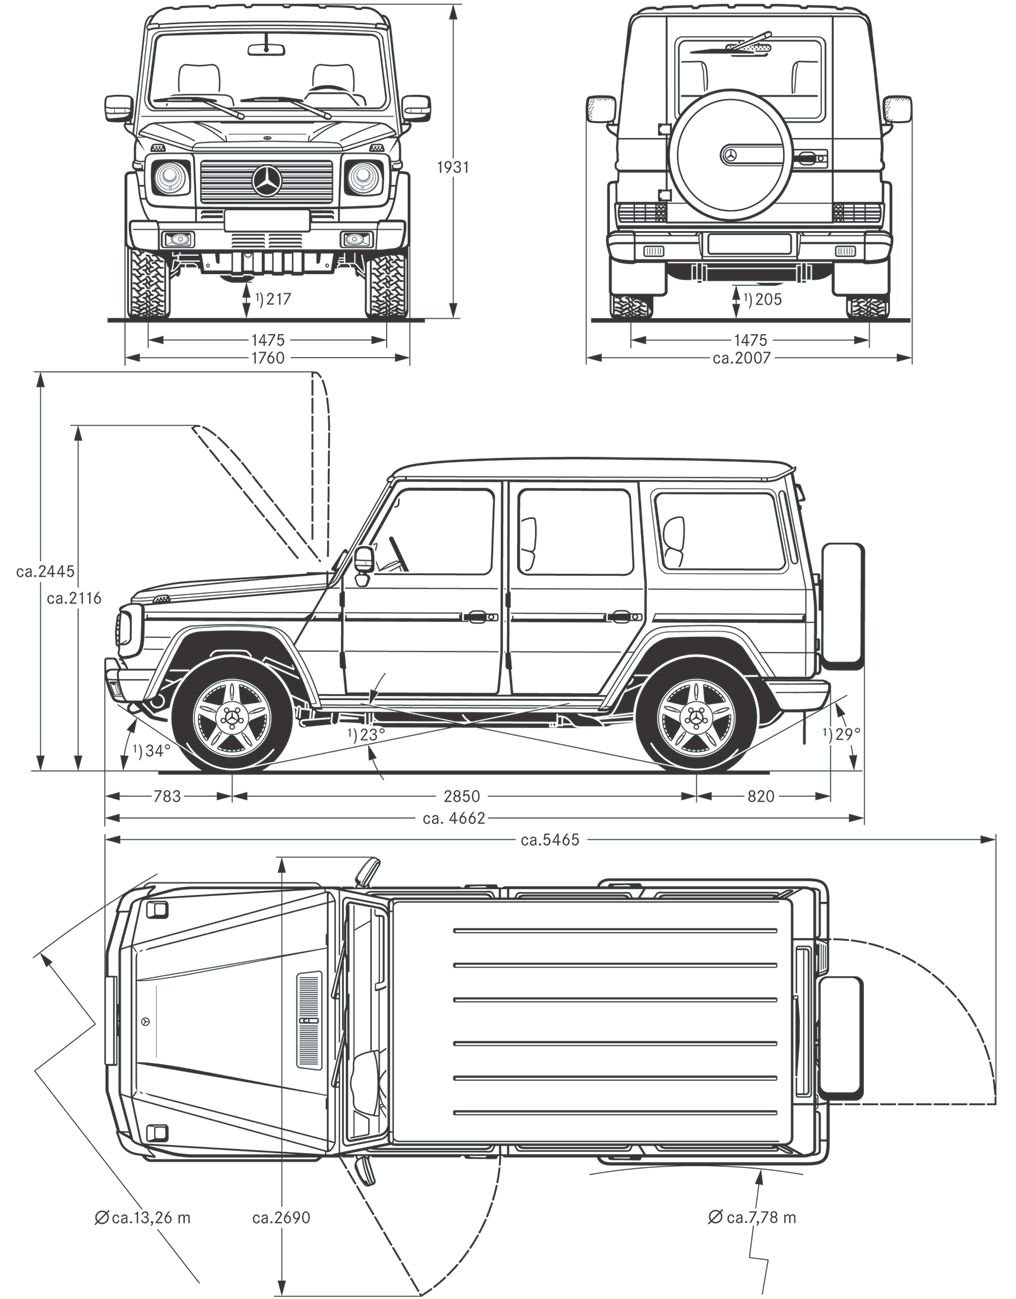 17-dimensions-exterieures-version-break-long-g500-mercedes-classe-g-463.jpg